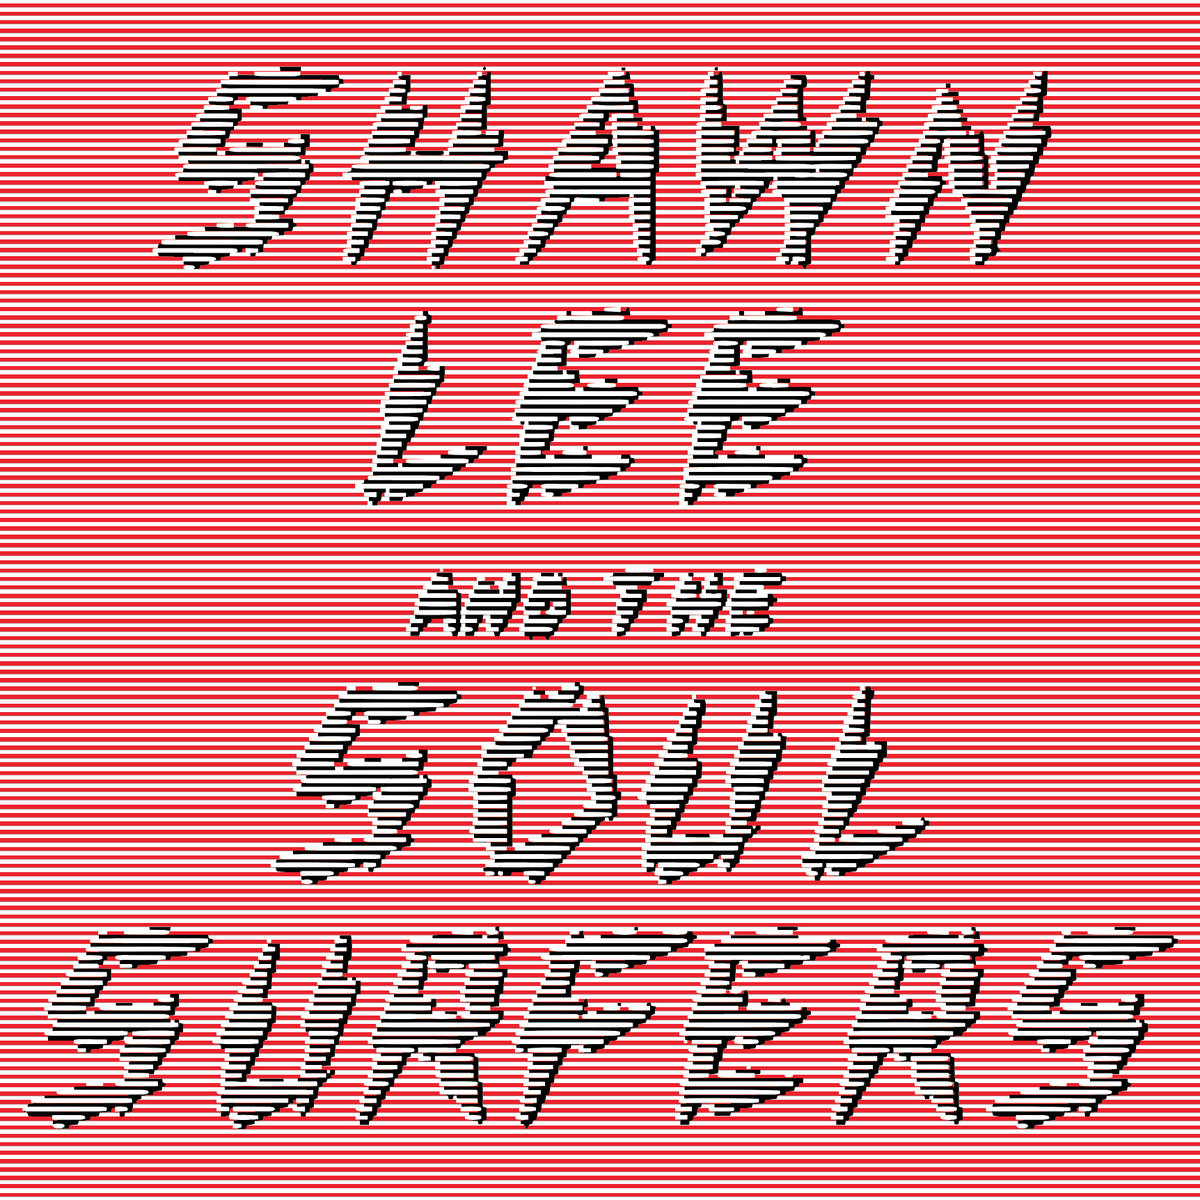 Shawn Lee & The Soul Surfers - Shawn Lee And The Soul Surfers (2018)